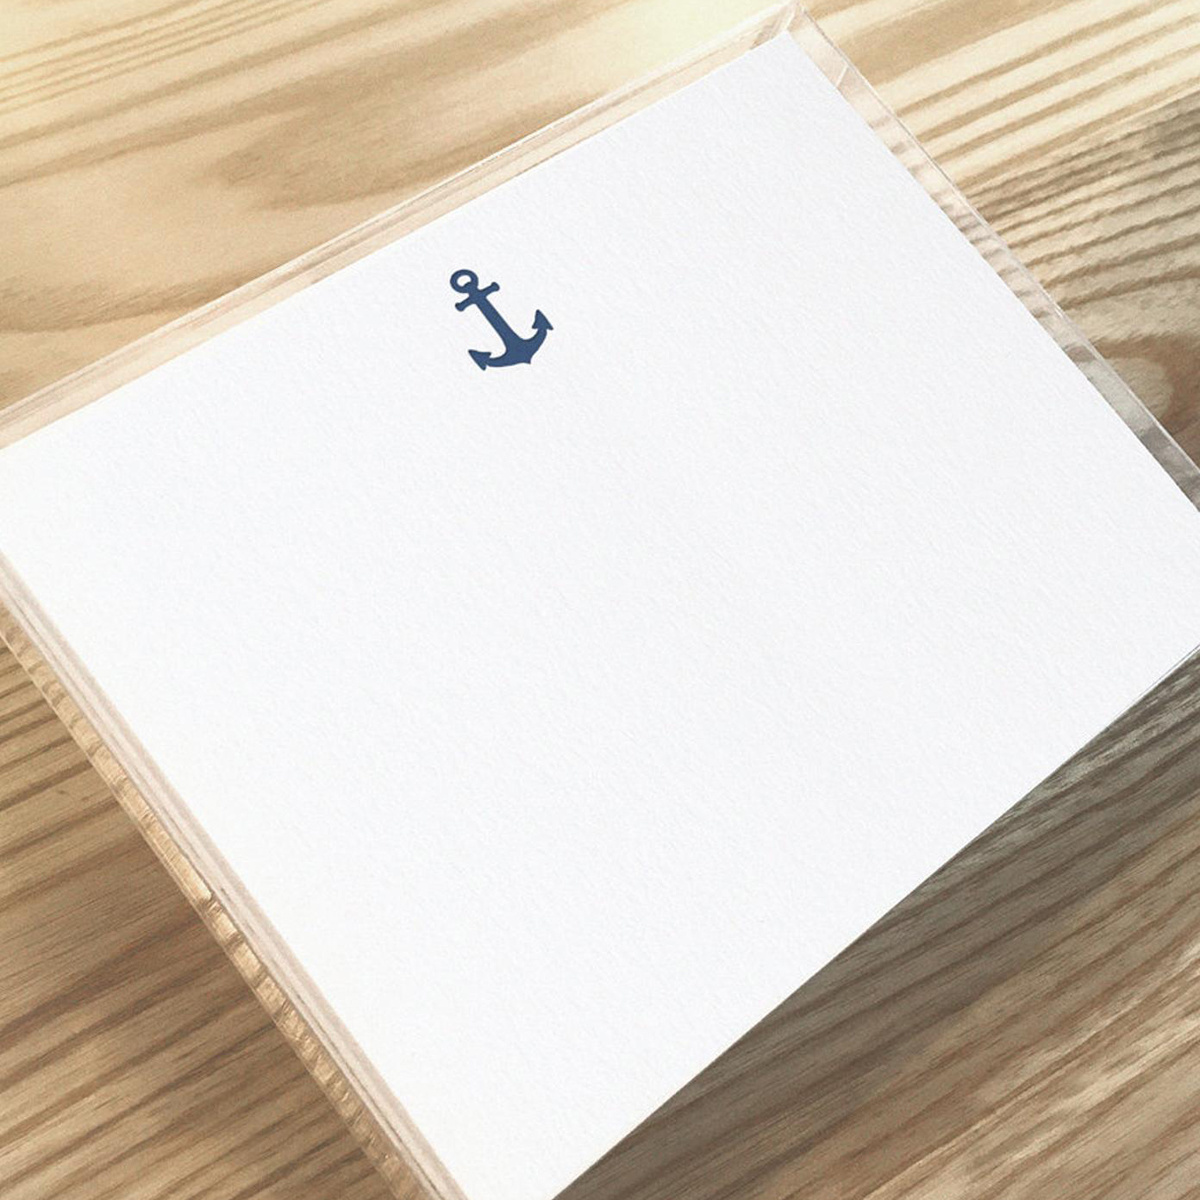 Huckleberry Letterpress - HBL Anchor Stationery Set of 12 Flat Cards